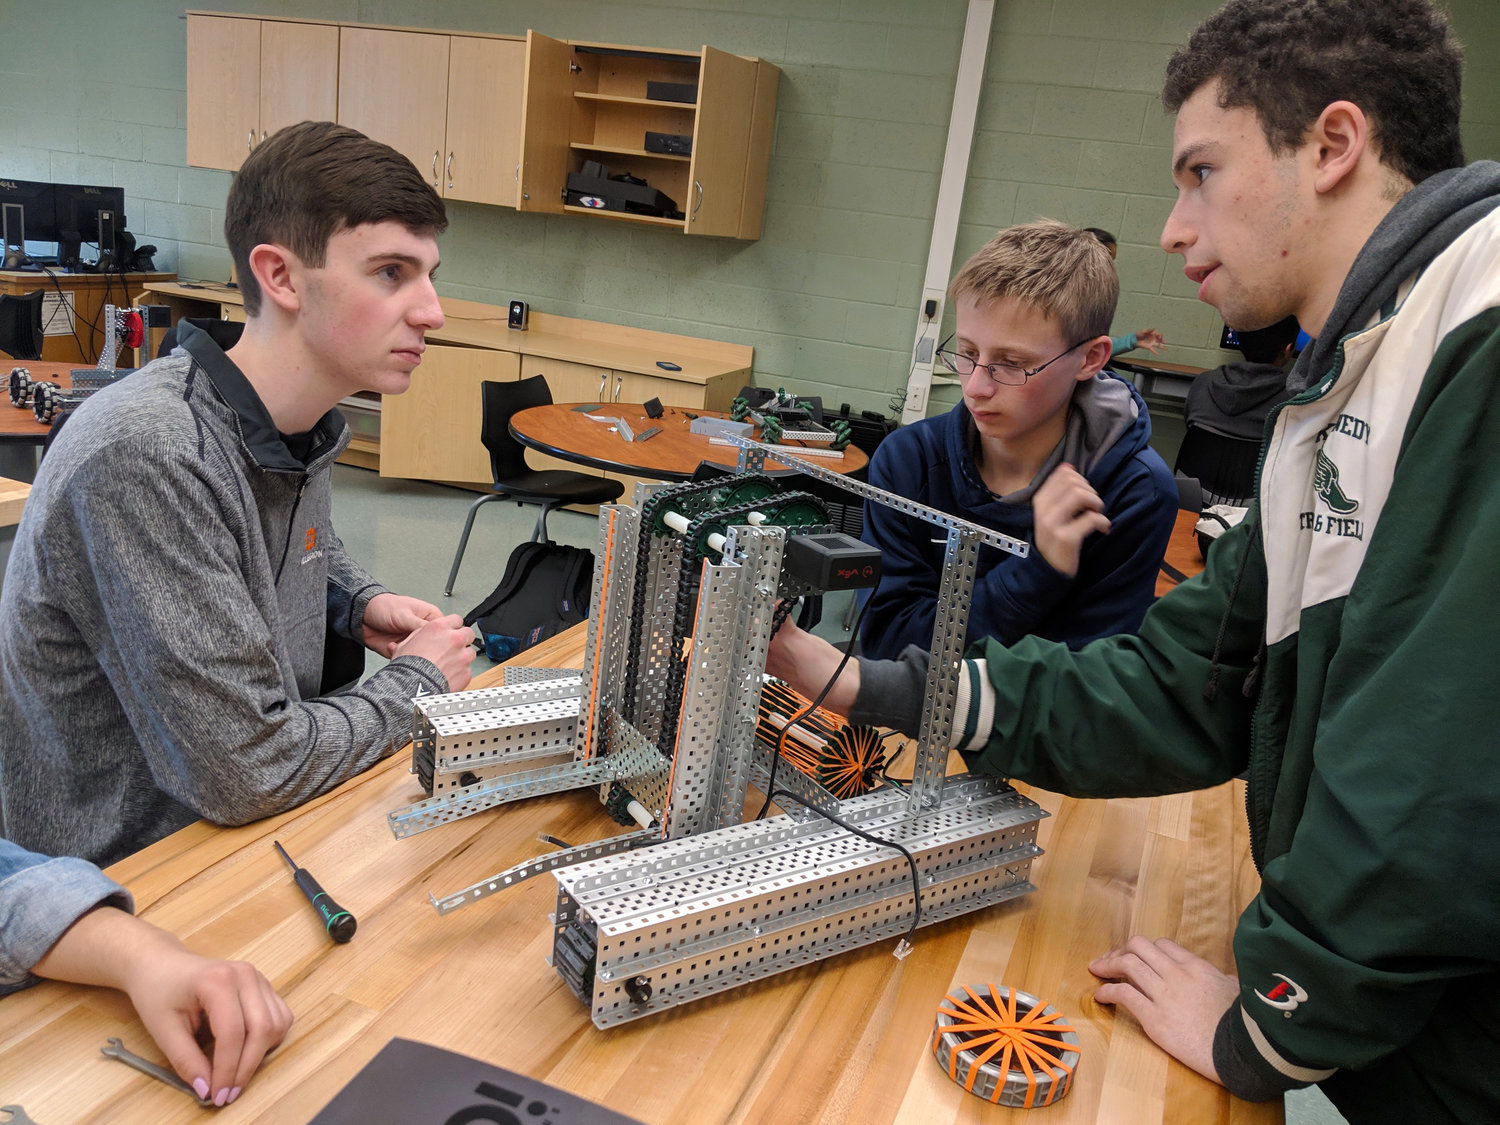 Cooper Moran, left, Jake Skolnik and Jordan Berke were in the first stages of building a robot for the Vex Robotics Turning Point Competition on March 20.